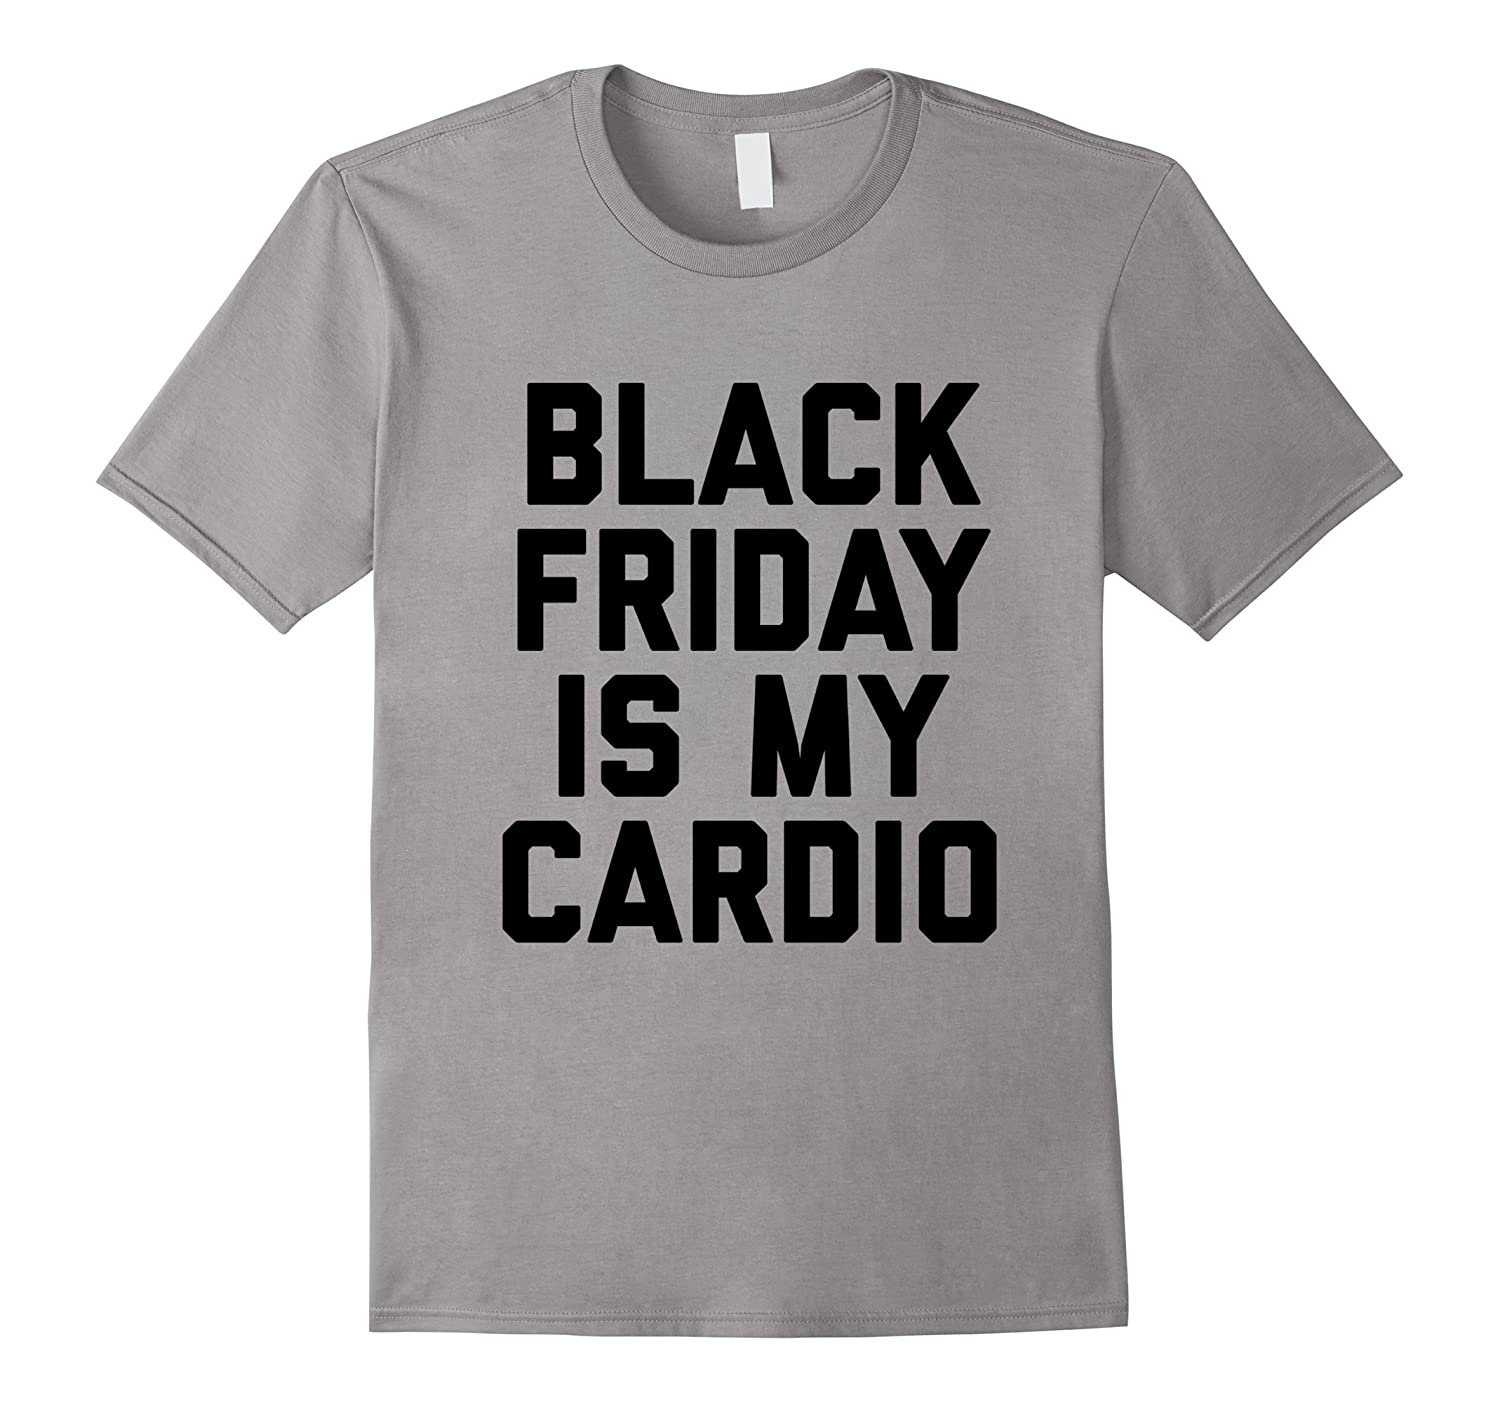 8ddf37fdd Top1: Black Friday Is My Cardio Funny Black Friday T Shirt. Wholesale Price :14.99